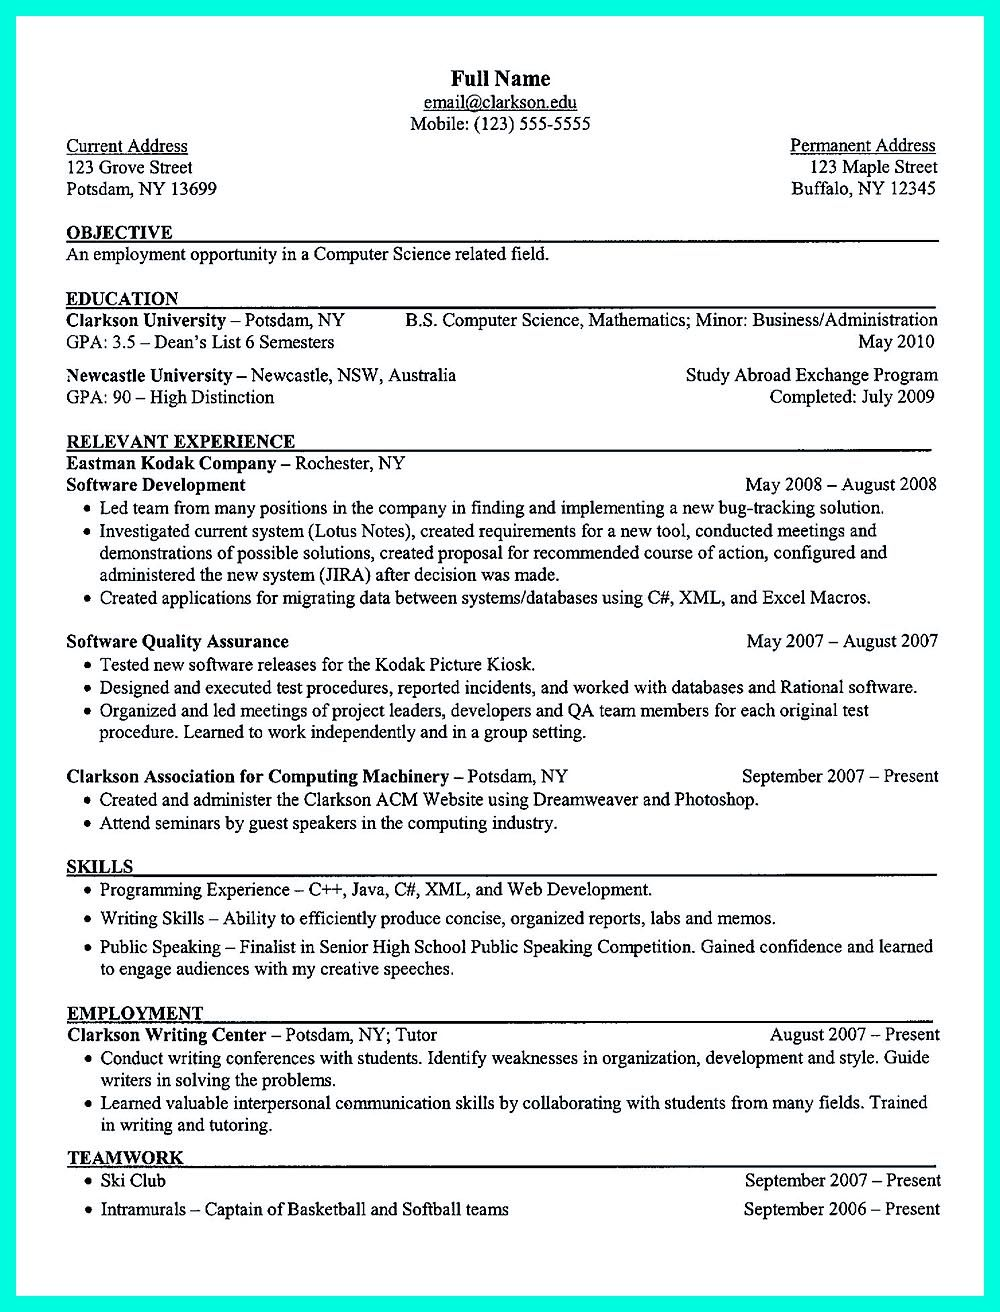 Program Analyst Resume What You Will Include In The Computer Science Resume Depends On